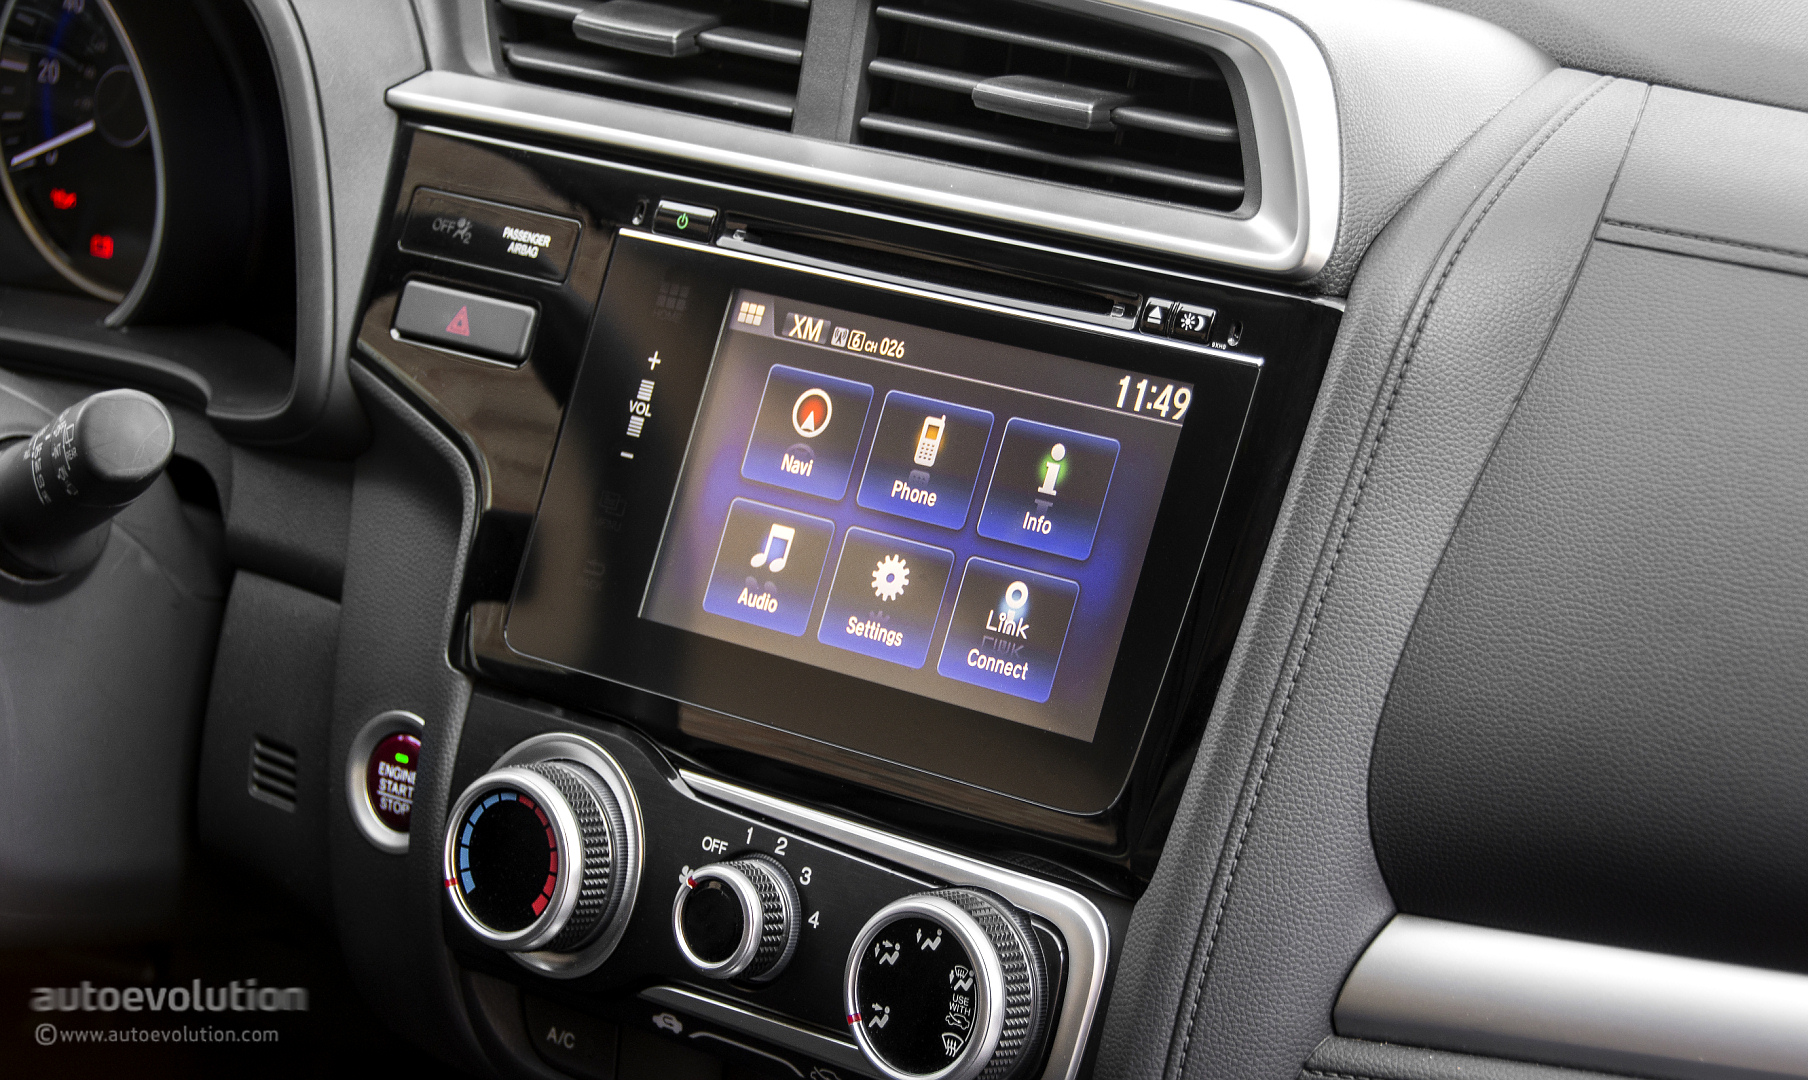 hight resolution of the climate and audio controls are easy to reach and understand and while the touch sensitive surface of the former are hard to pinpoint on bumpy roads